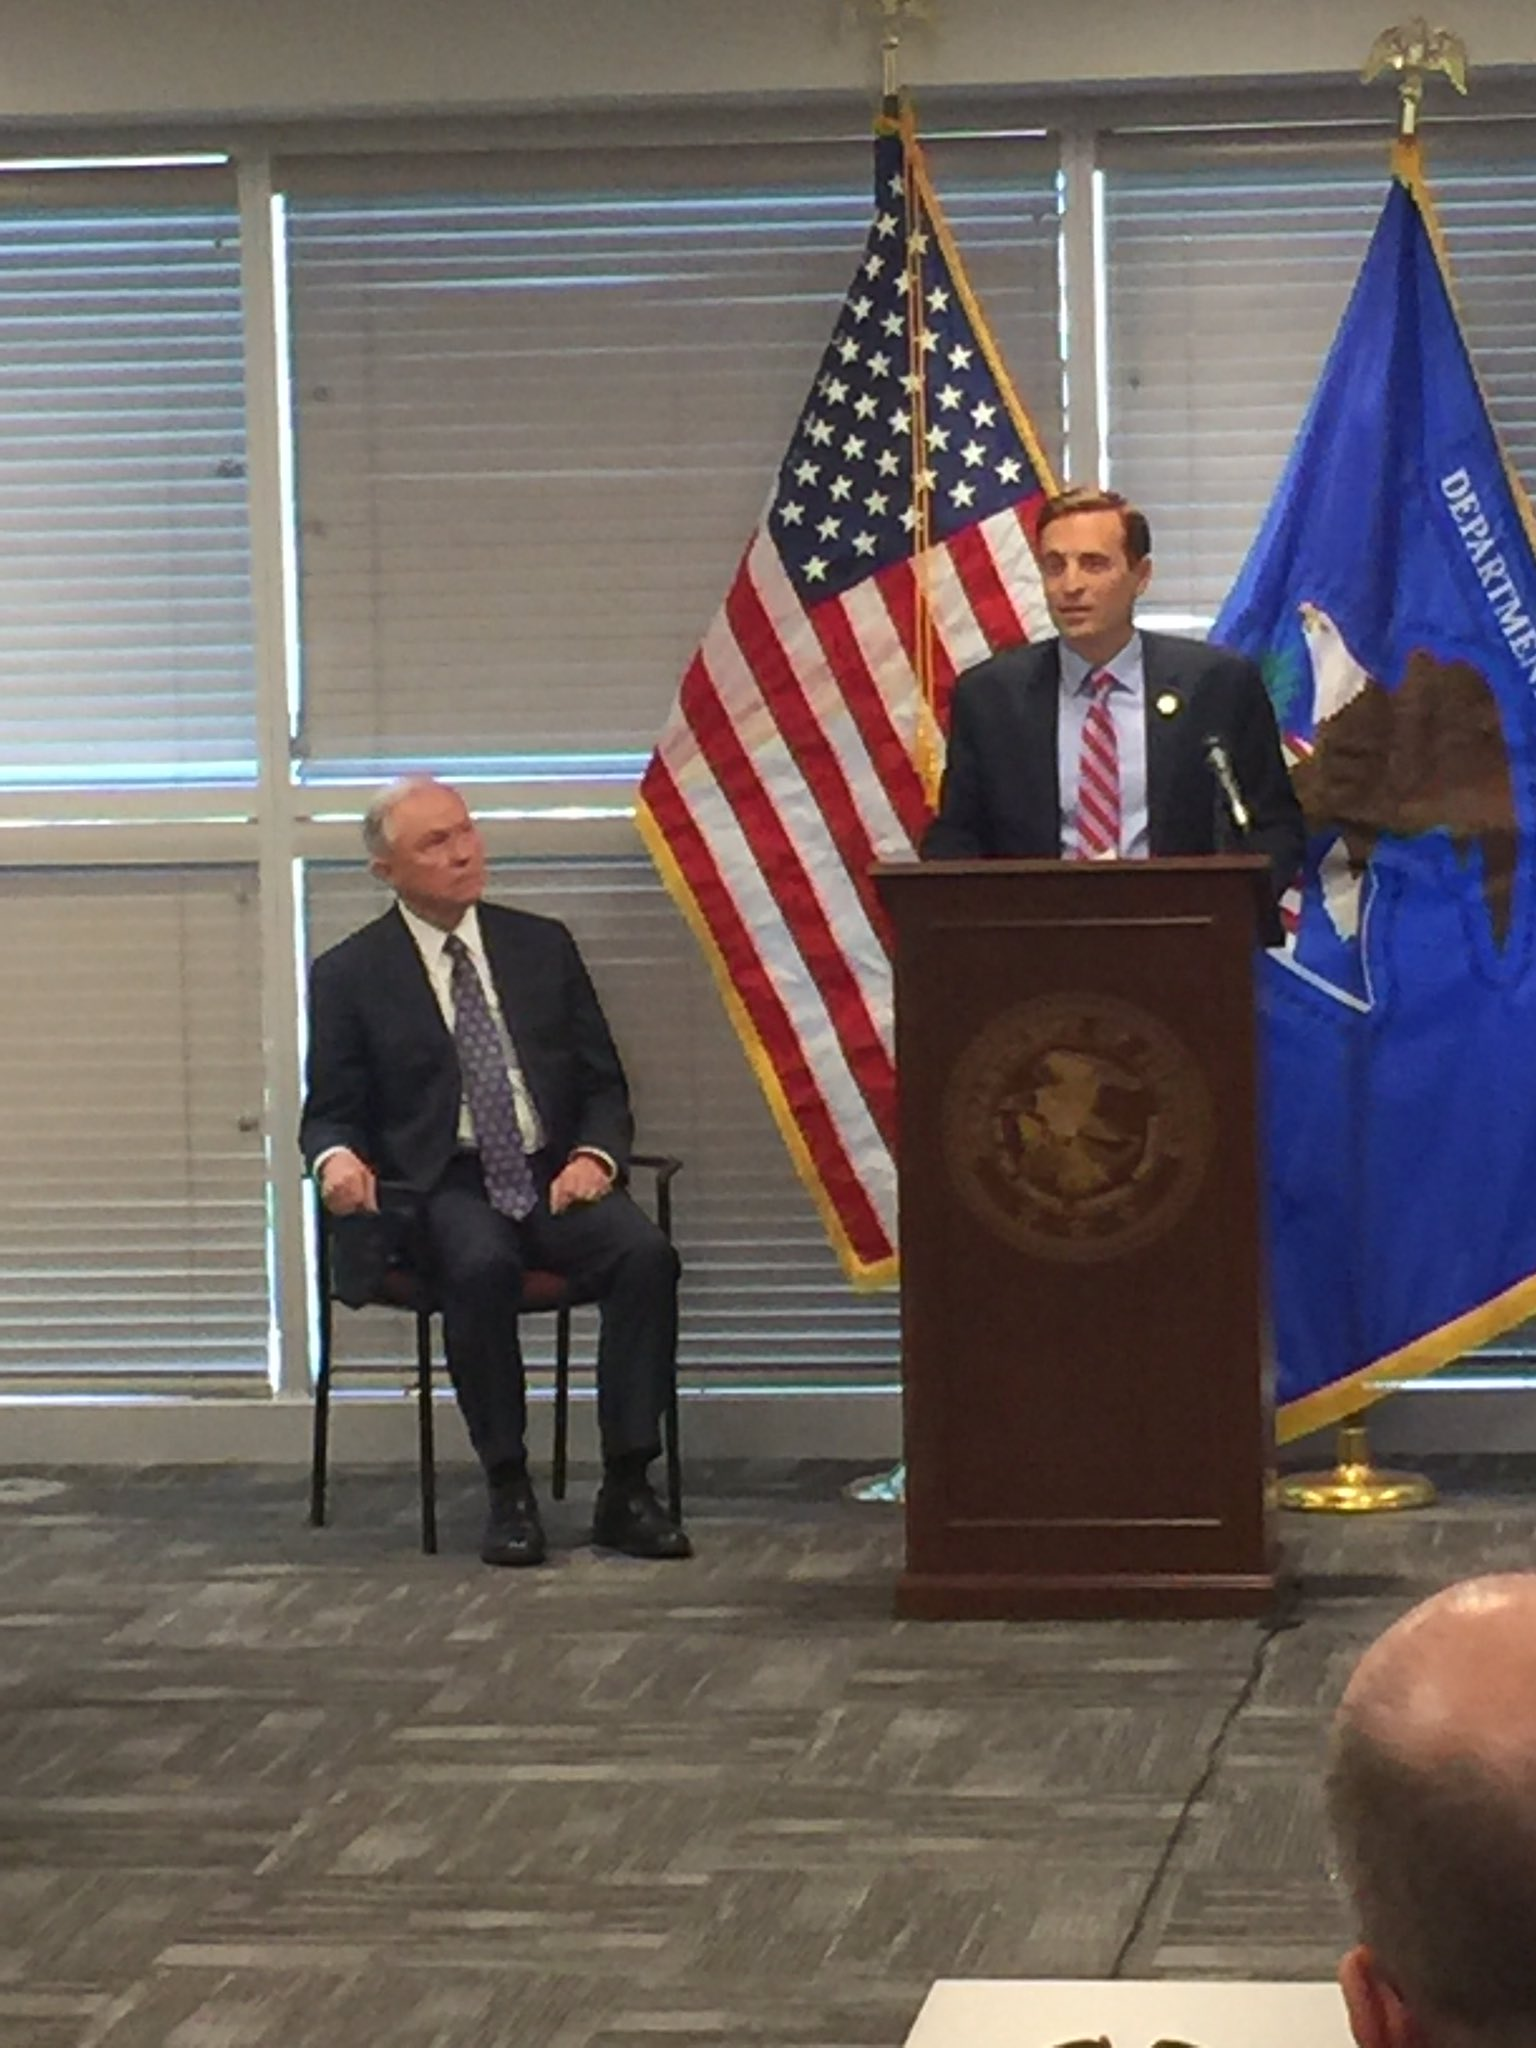 Nevada Attorney General Adam Laxalt introducing United States Attorney General Jeff Sessions before a speech in Las Vegas on July 12, 2017. (Jeff Gillan | KSNV)